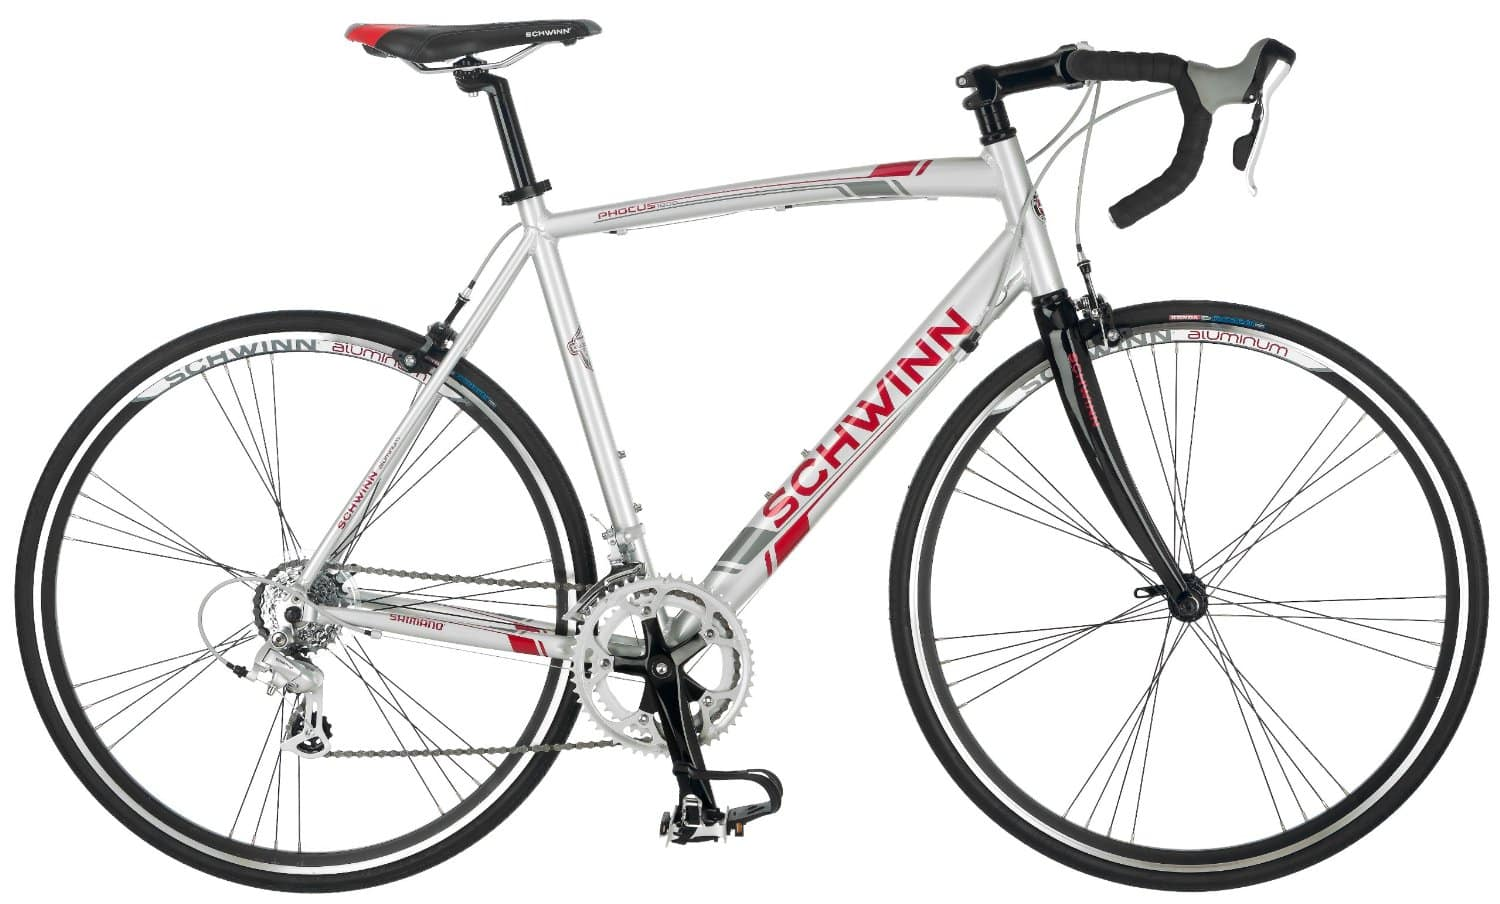 Men's Schwinn Phocus 1600 Road Bicycle  $389 + Free Shipping